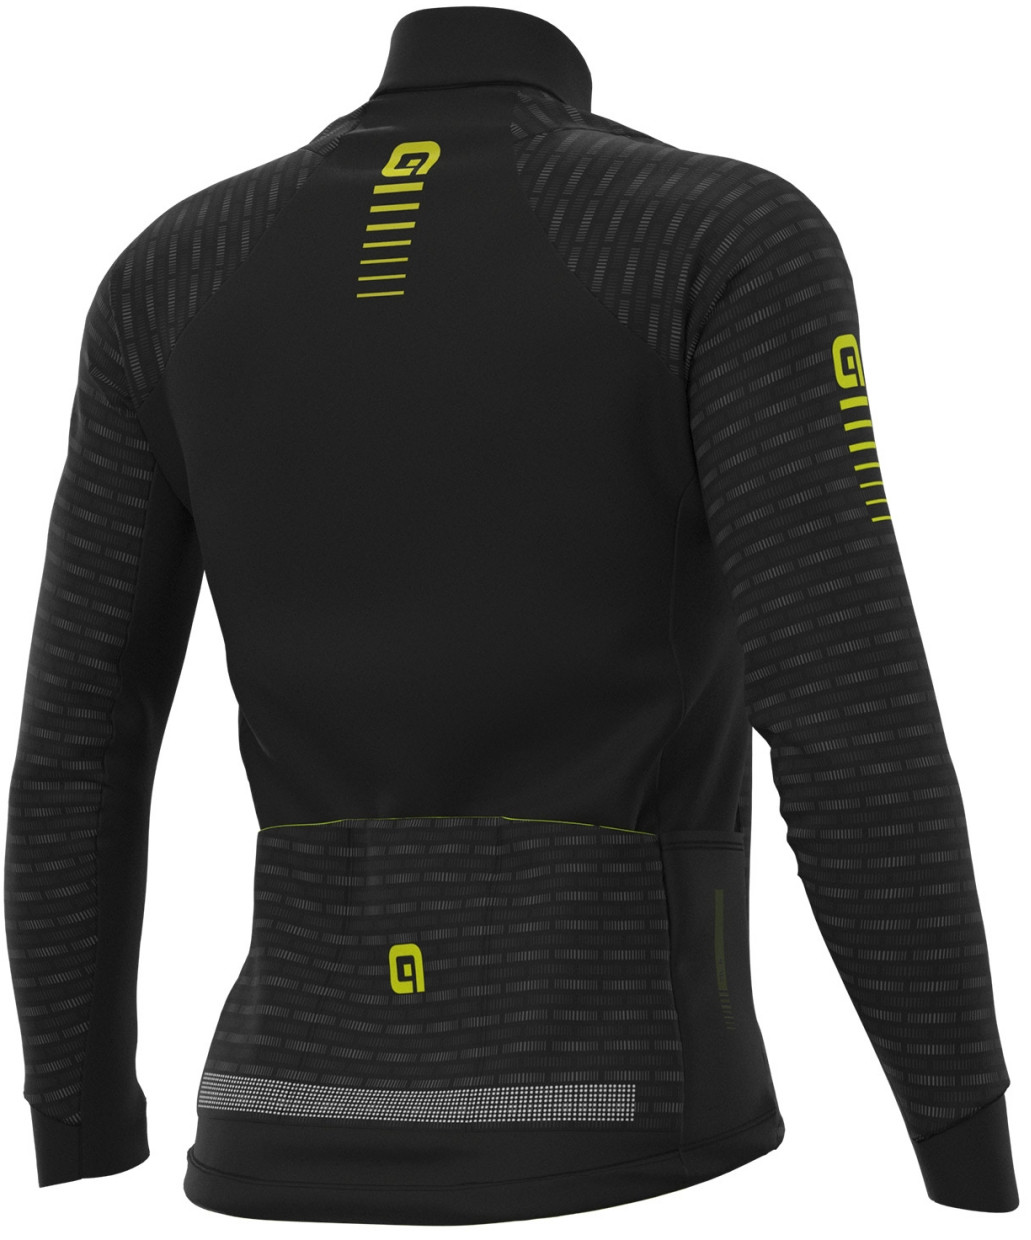 ALE' Green Road PRR Yellow Long Sleeve Jersey Rear